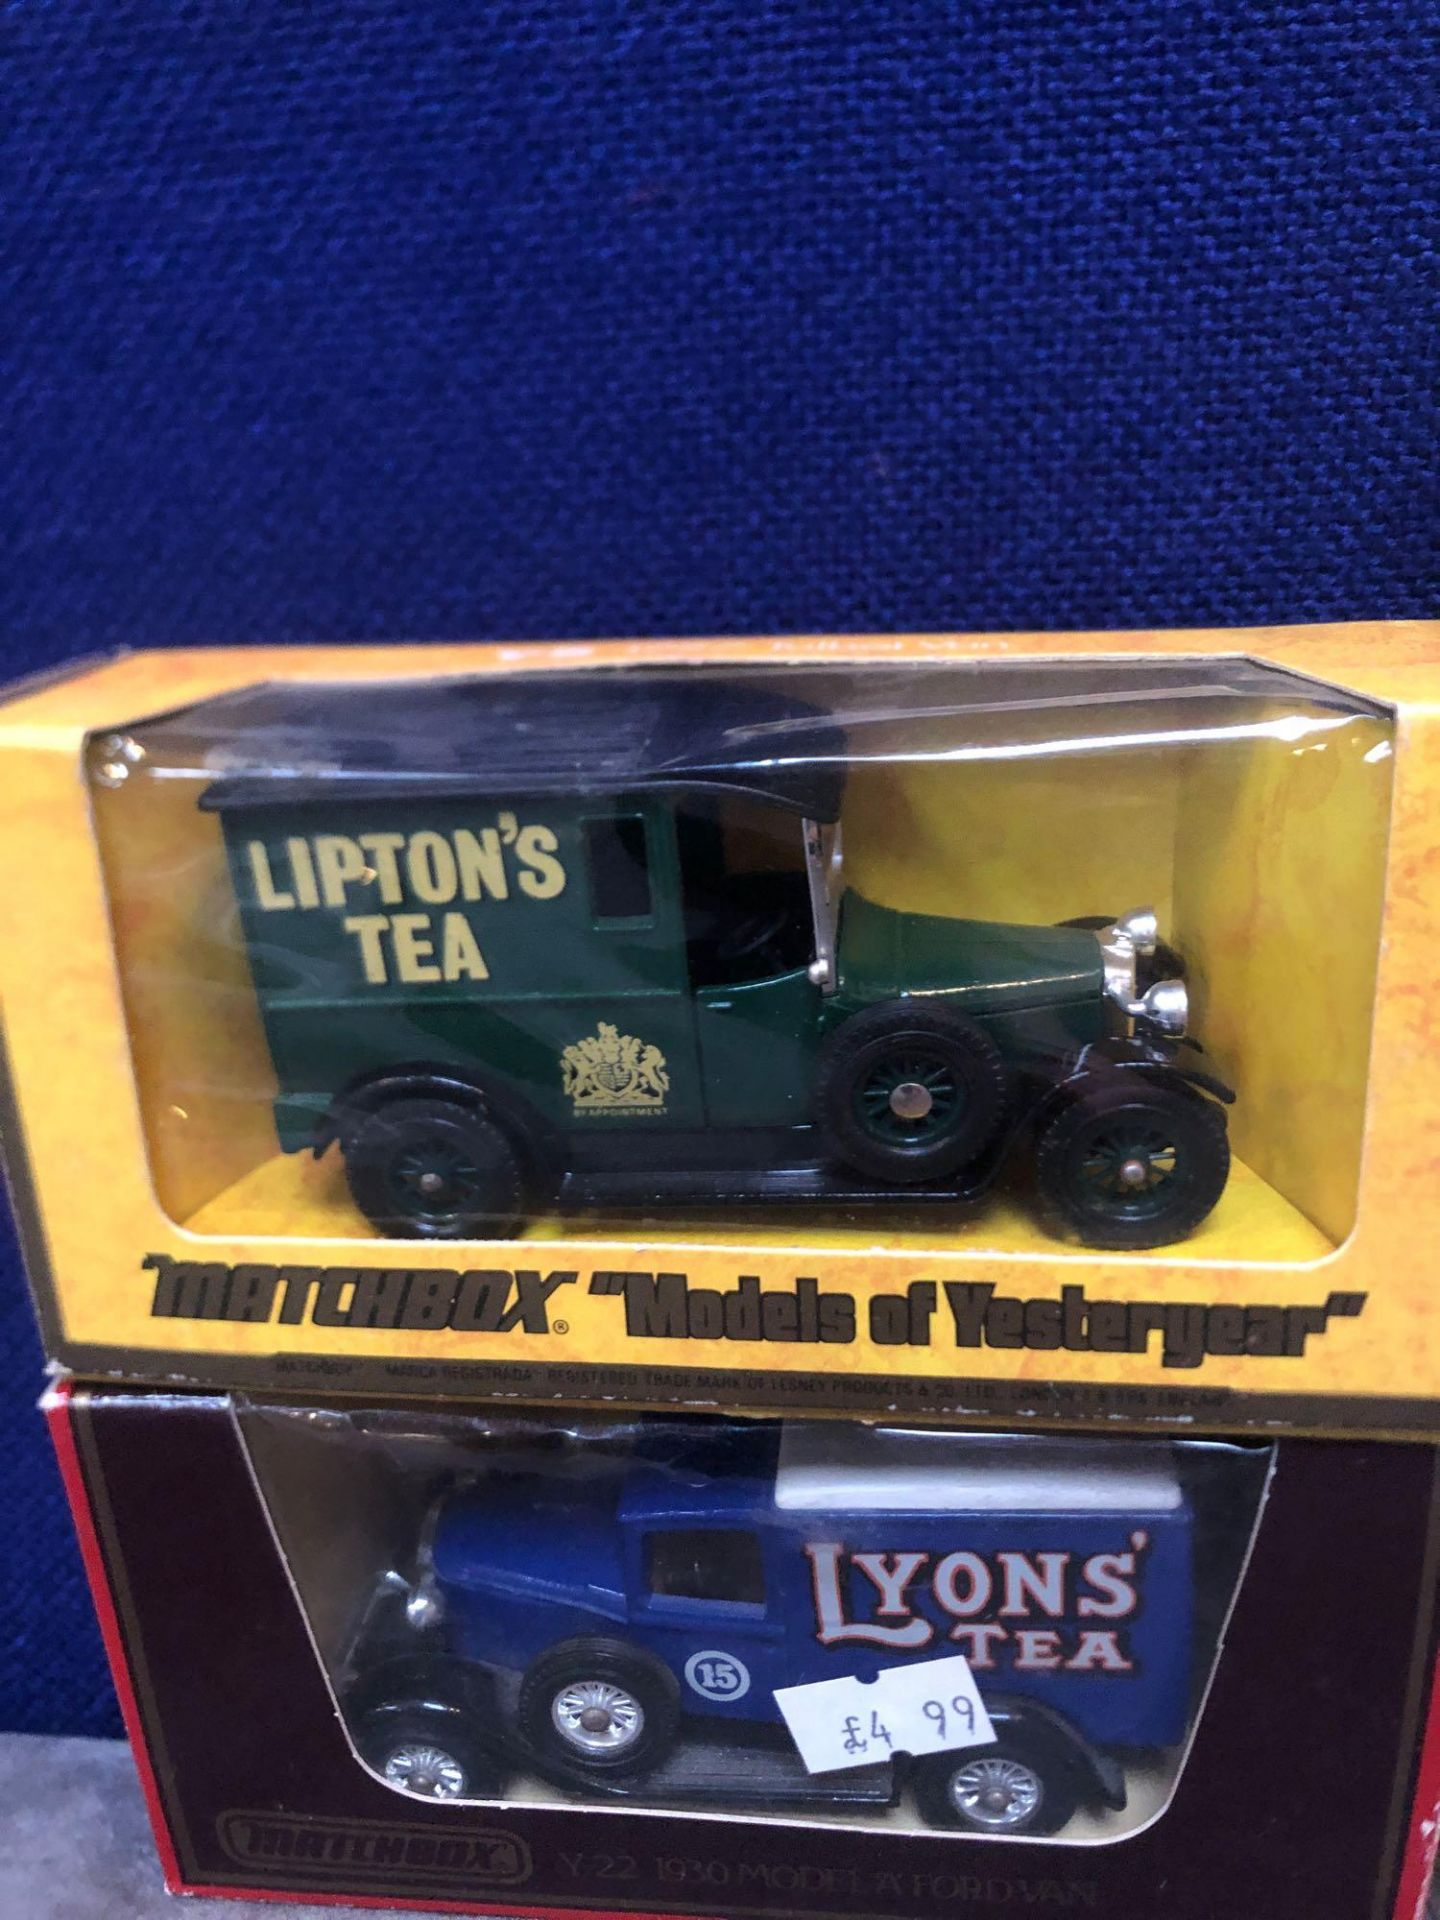 7x Diecast Vehicles Advertising Tea All In Individual Boxes - Image 4 of 4